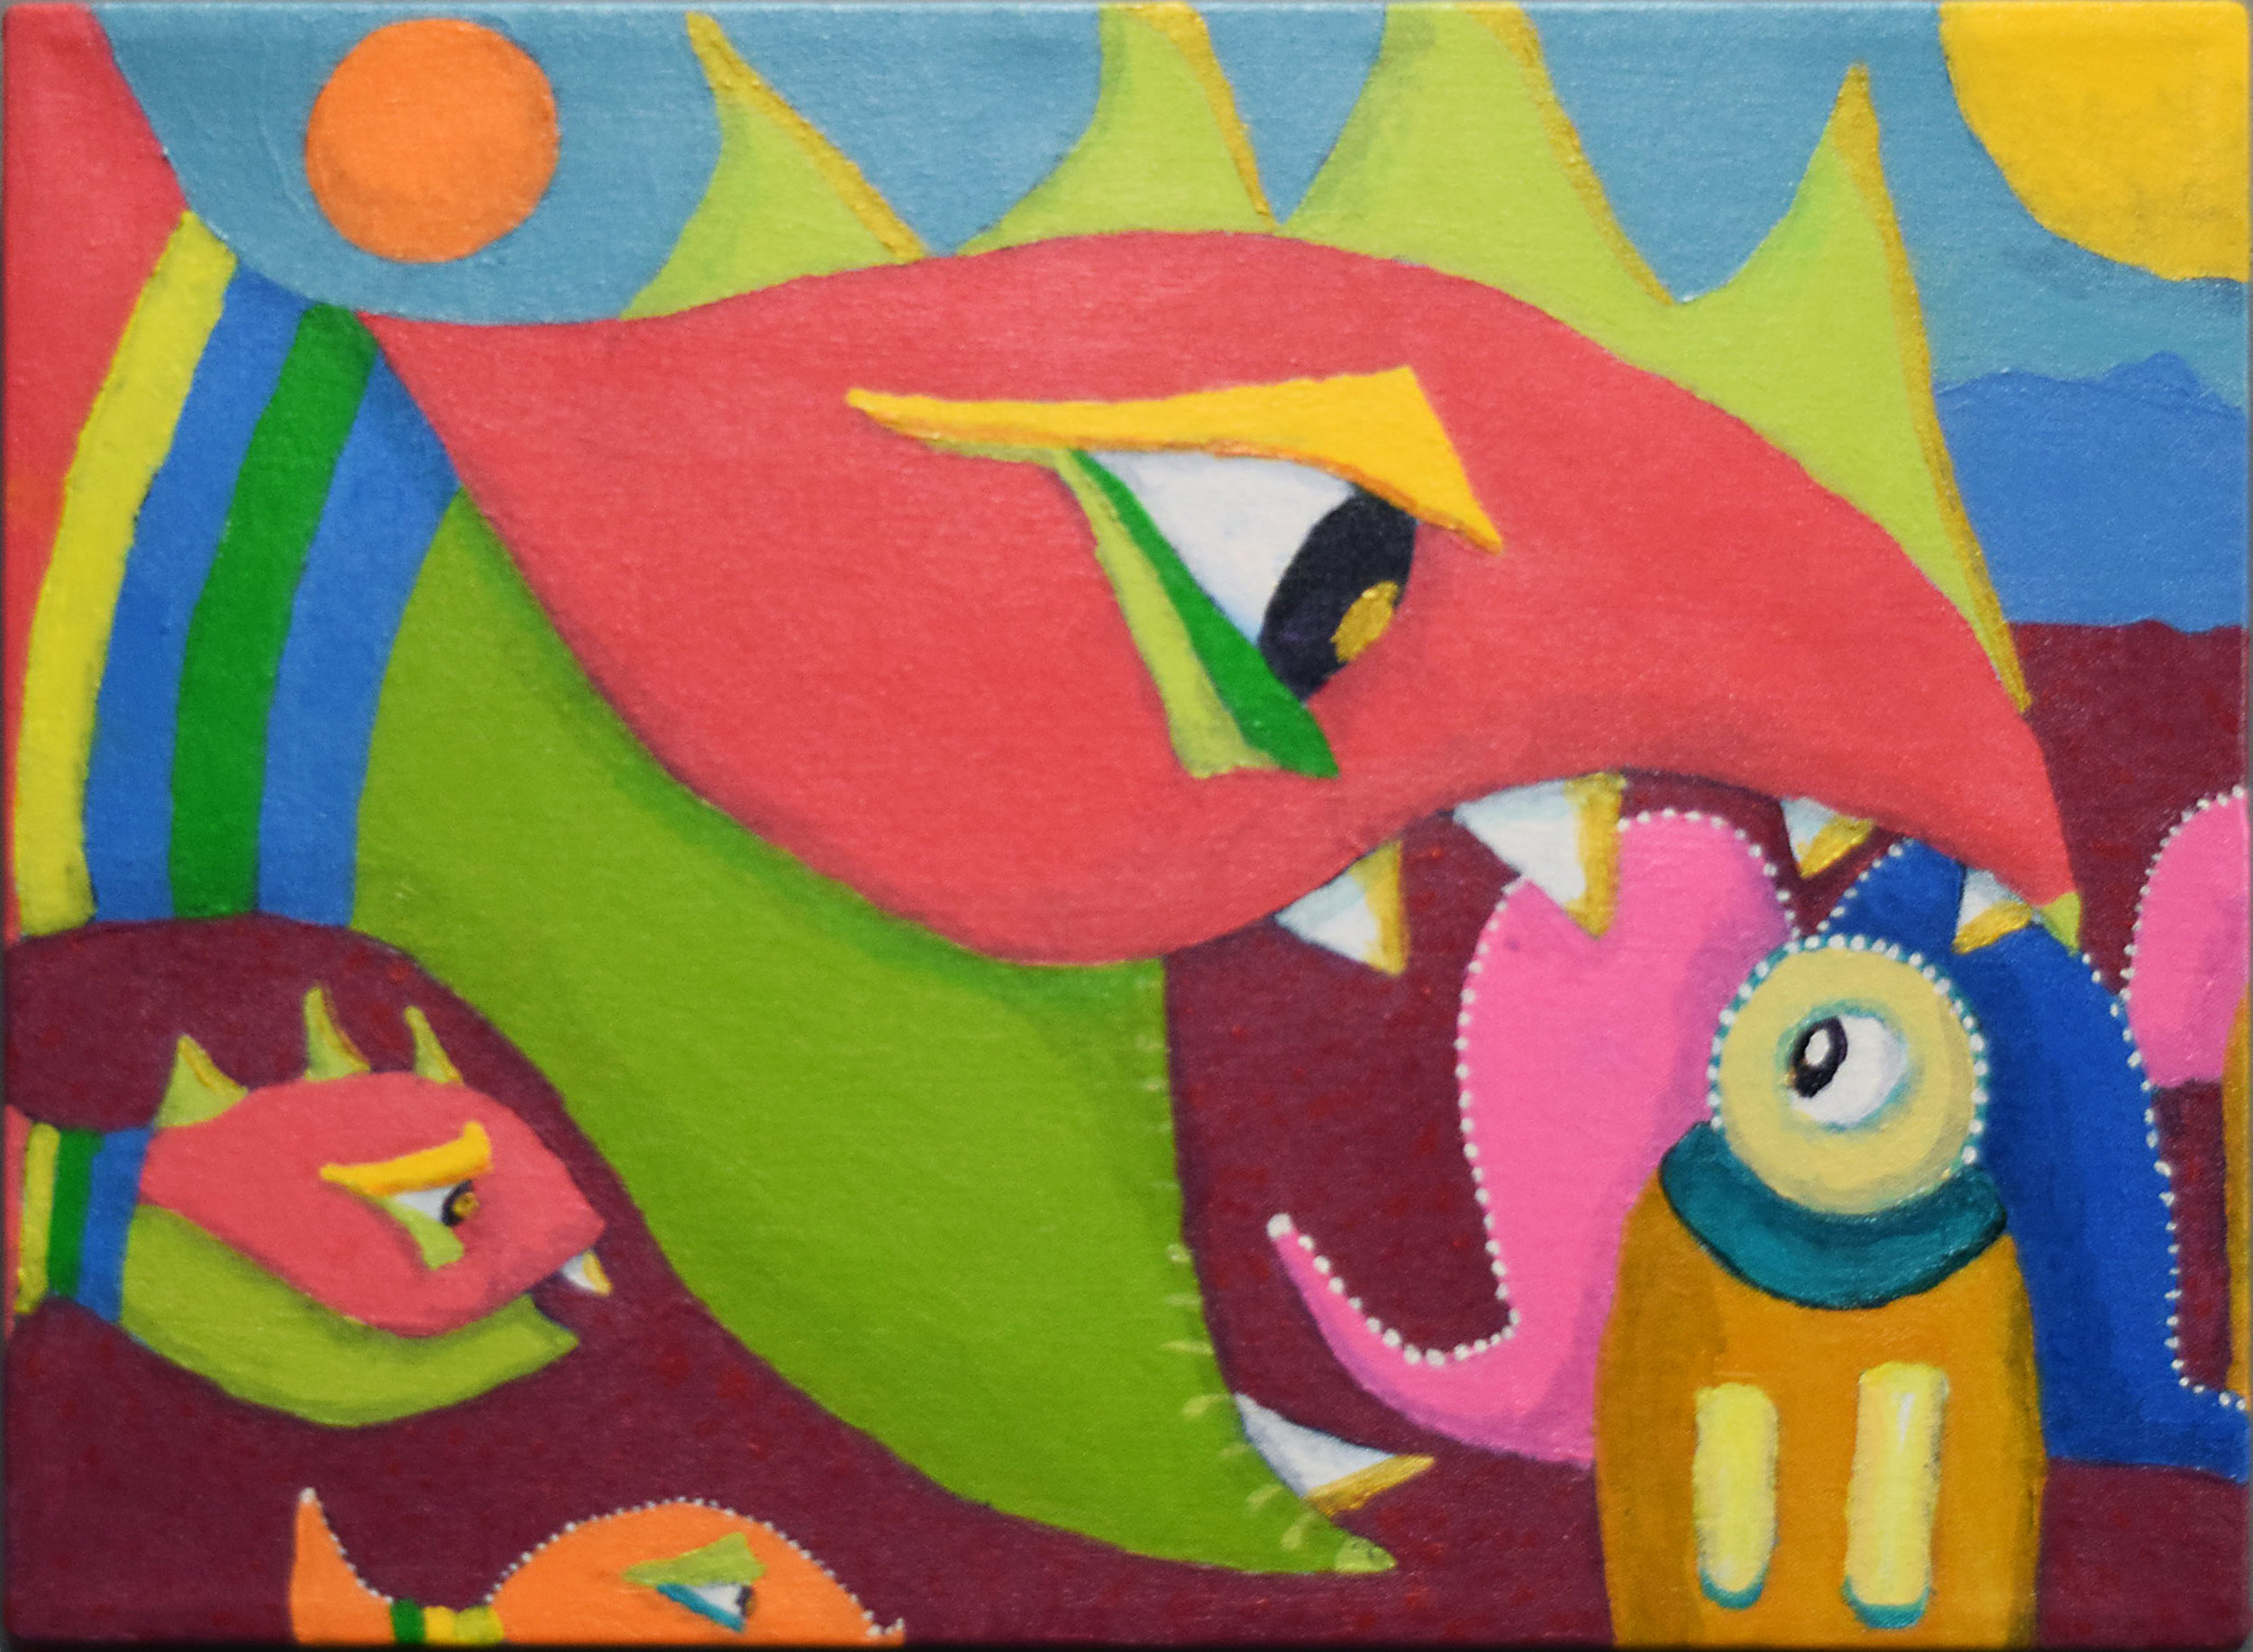 One of my newer paintings,  Attack,  which was included along with 21 other paintings.